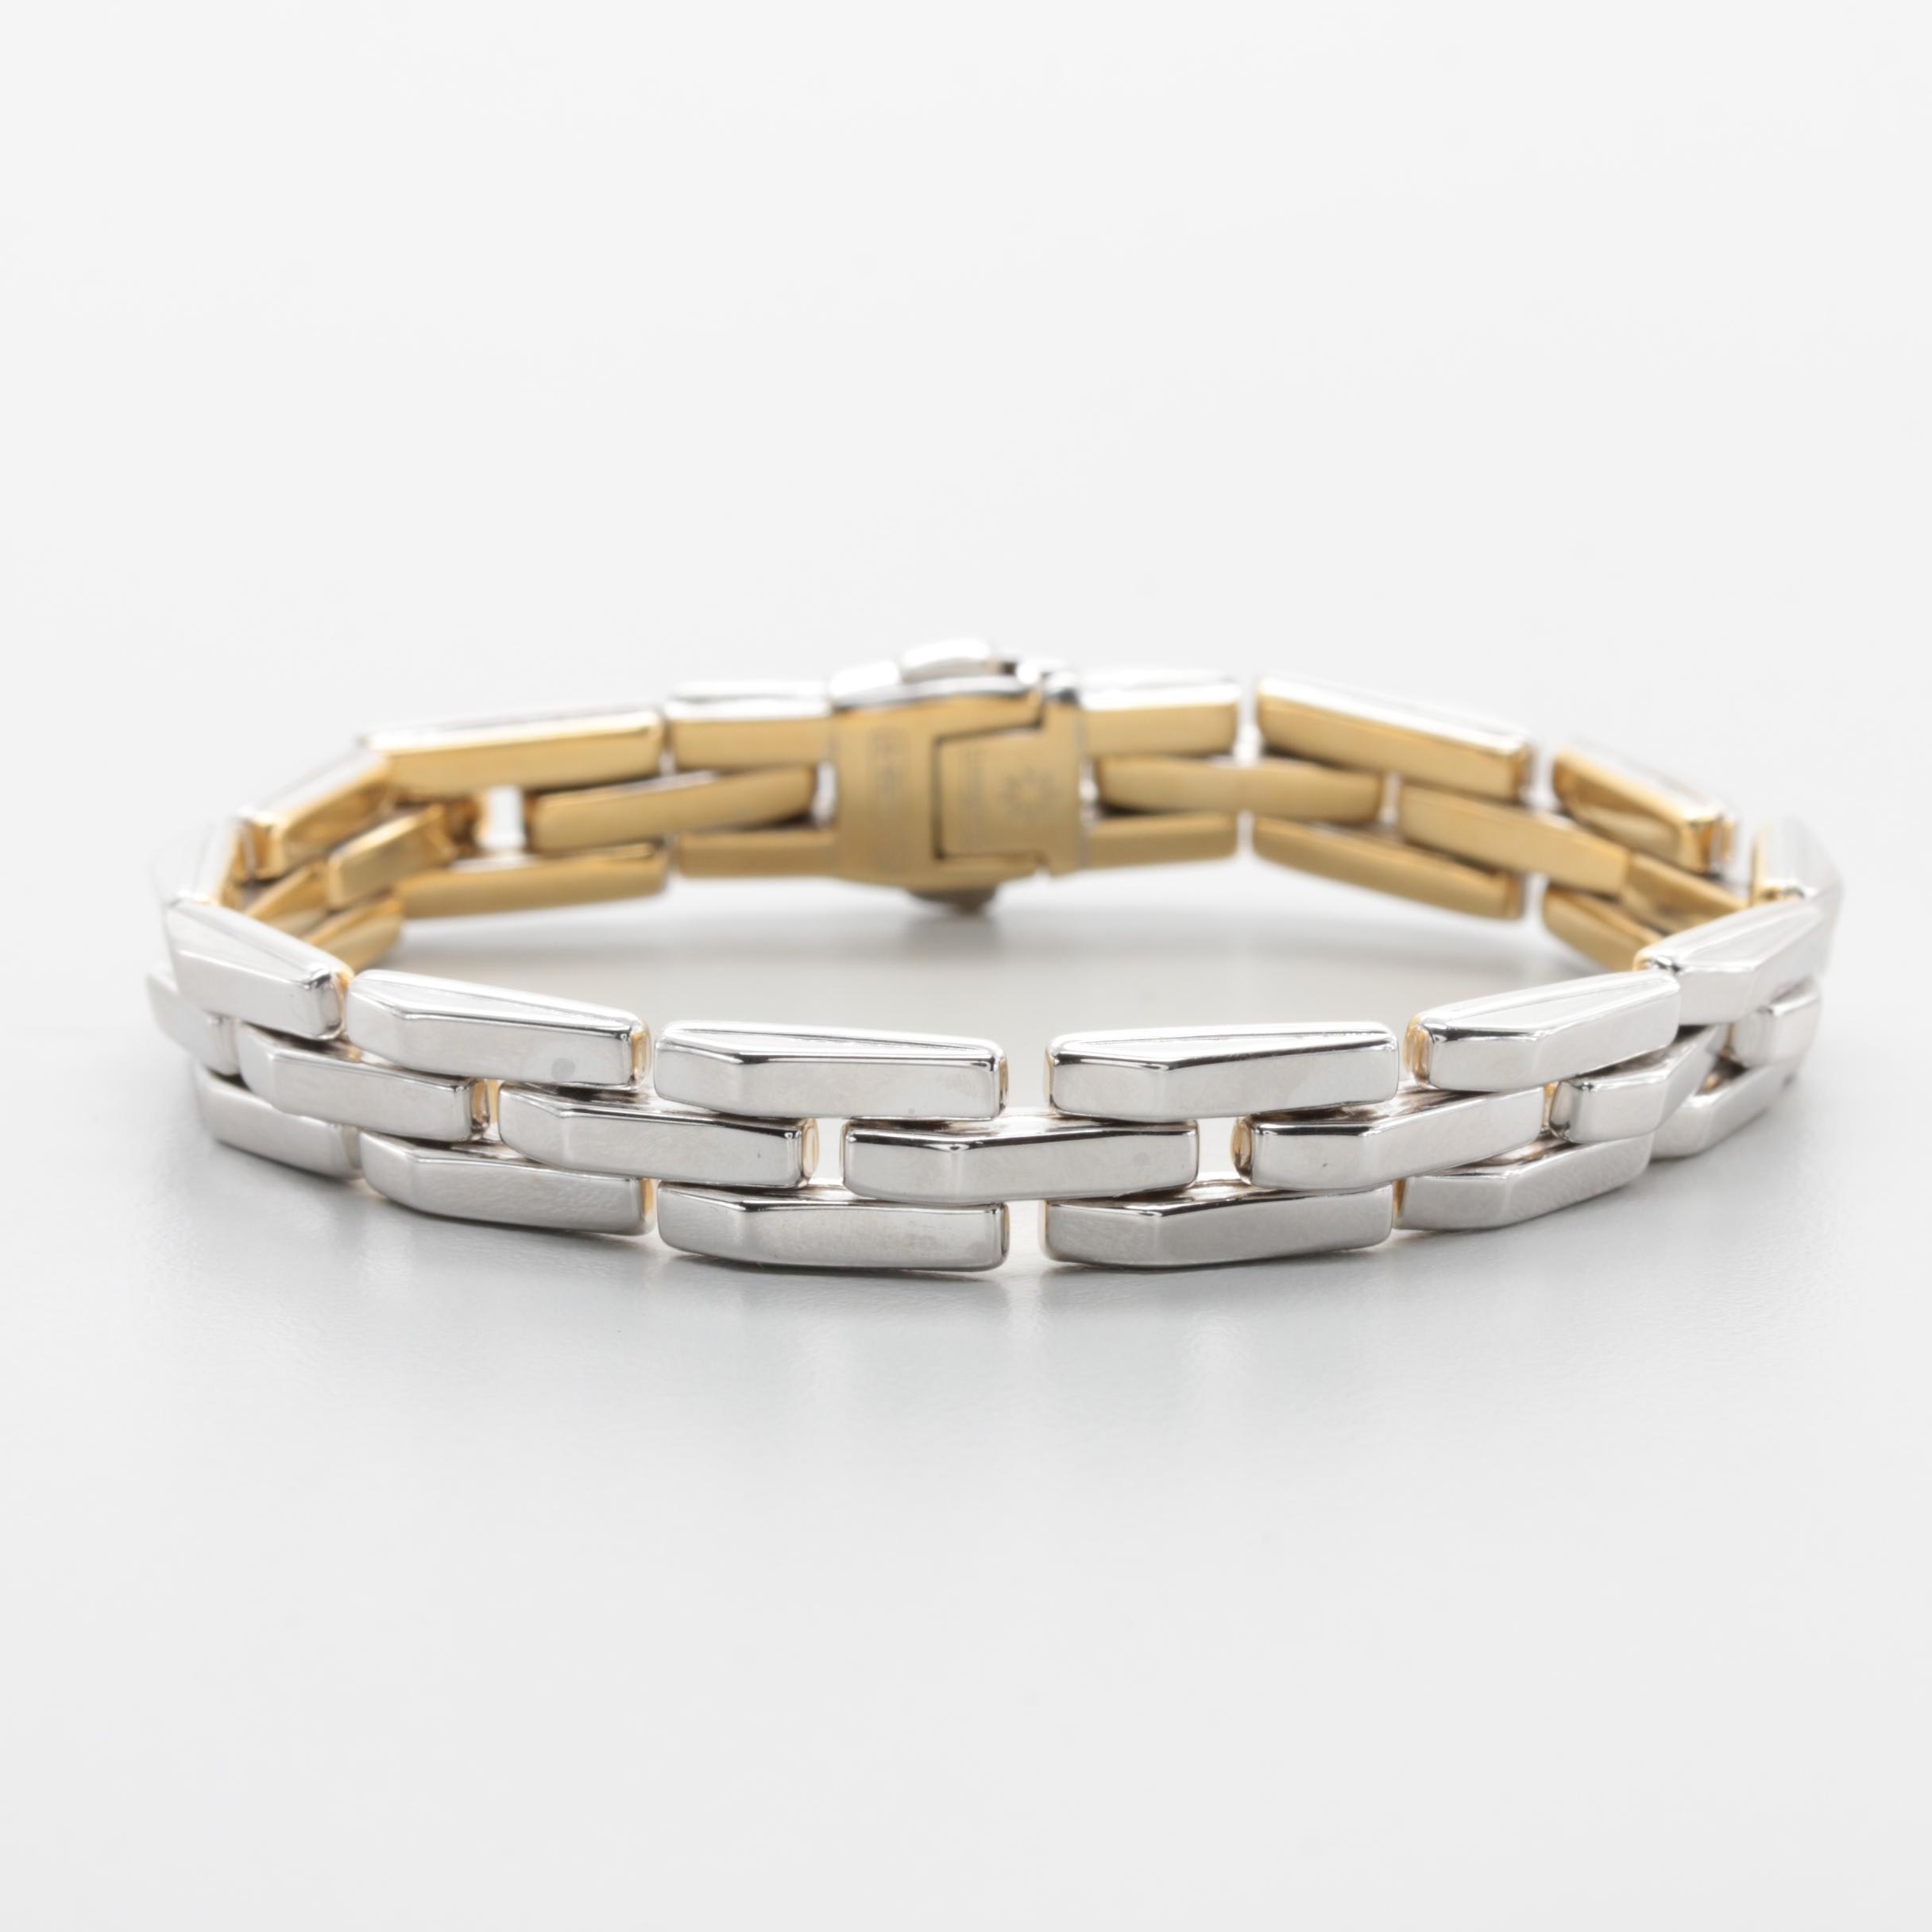 Chimento 18K Yellow and White Gold Reversible Bracelet With Diamond Accent